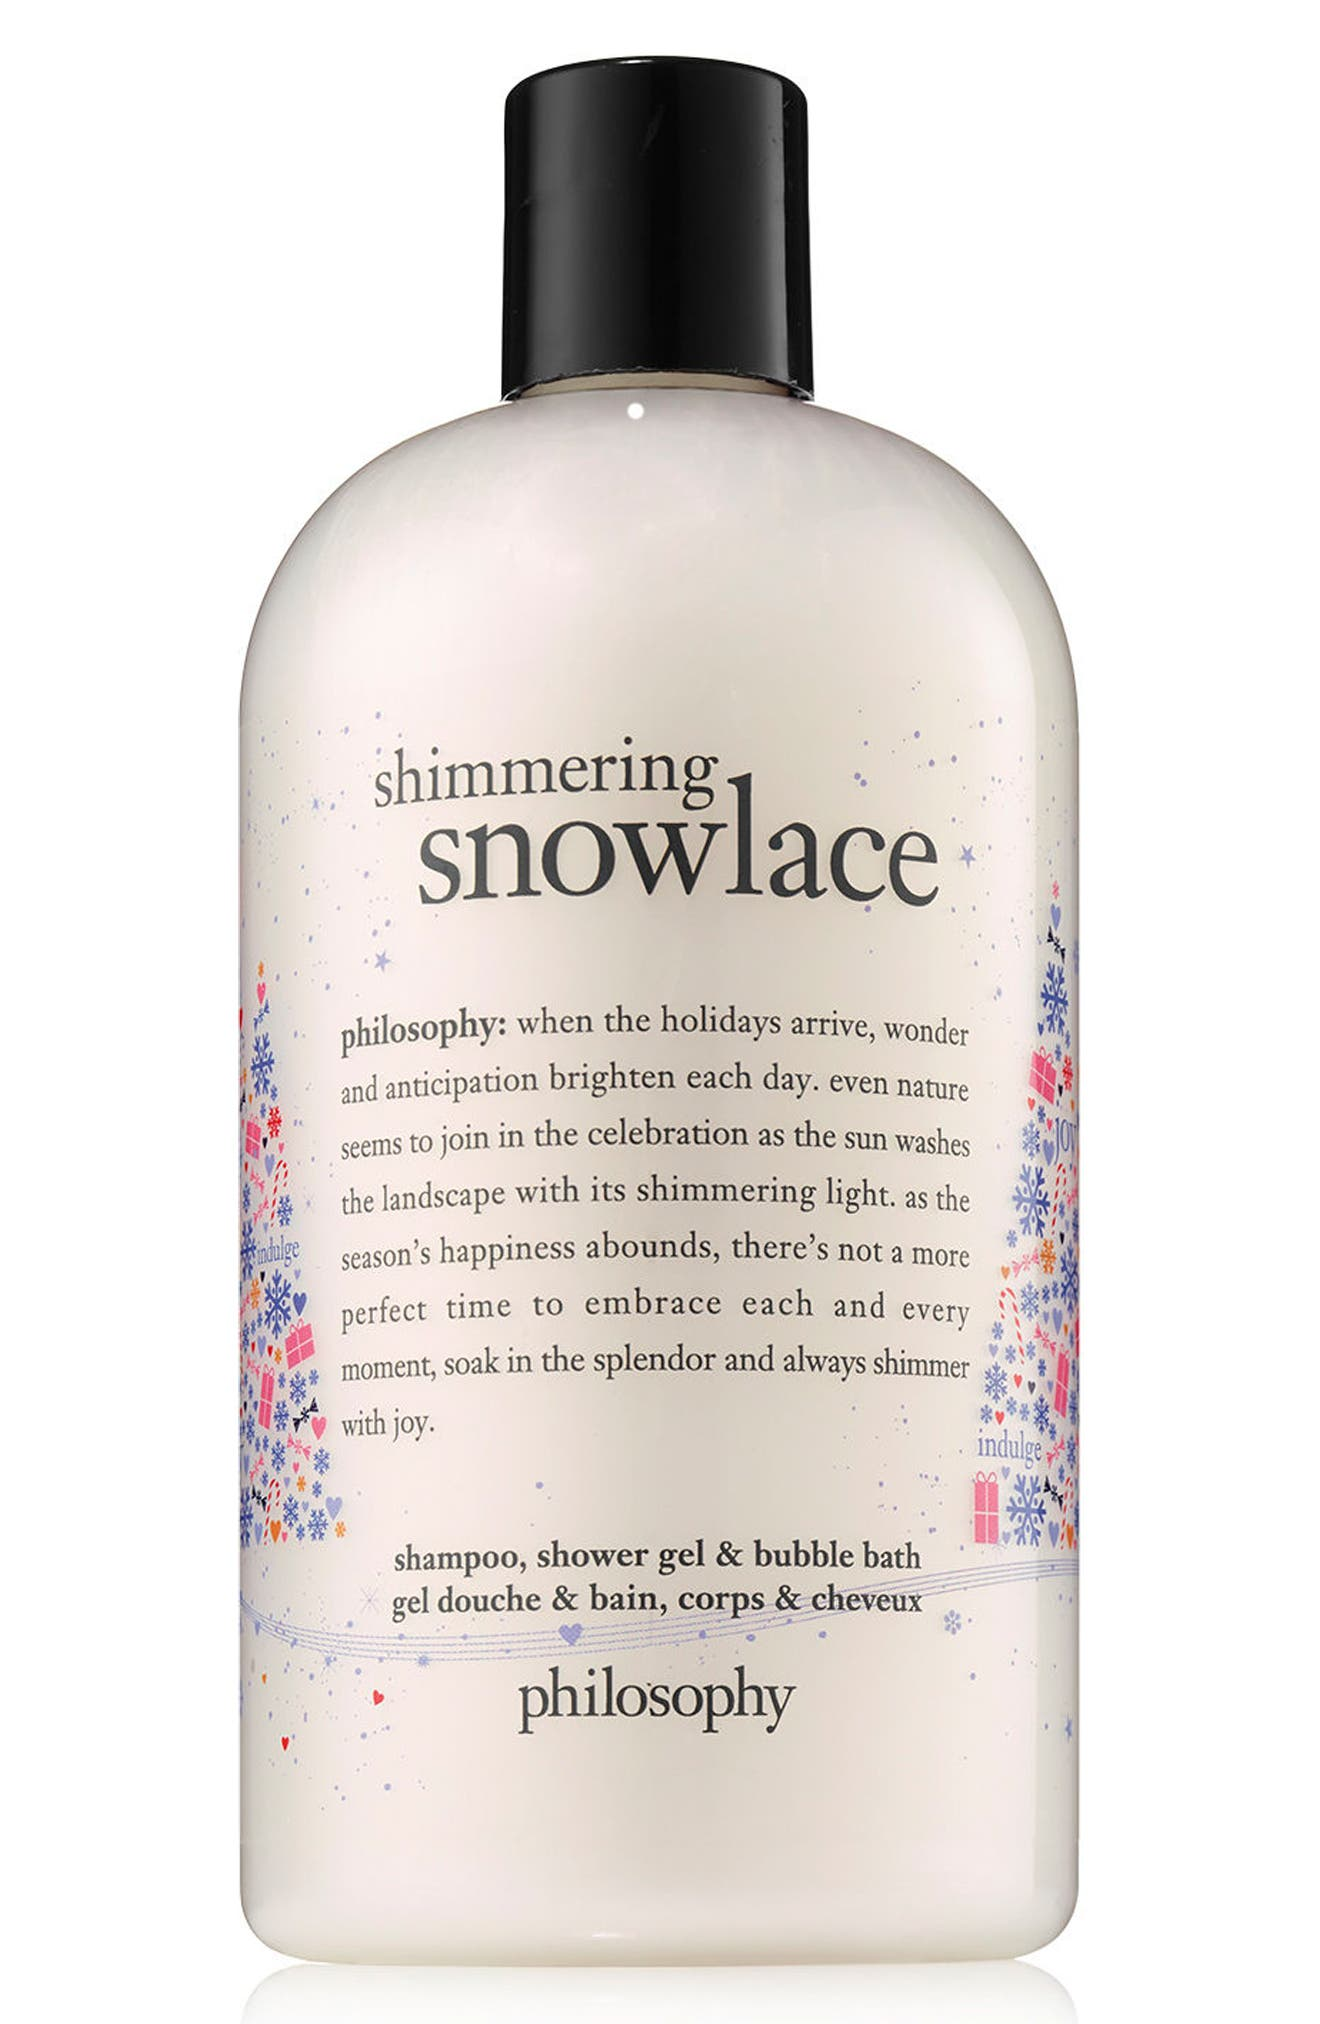 shimmering snowlace shampoo, shower gel & bubble bath,                             Main thumbnail 1, color,                             No Color